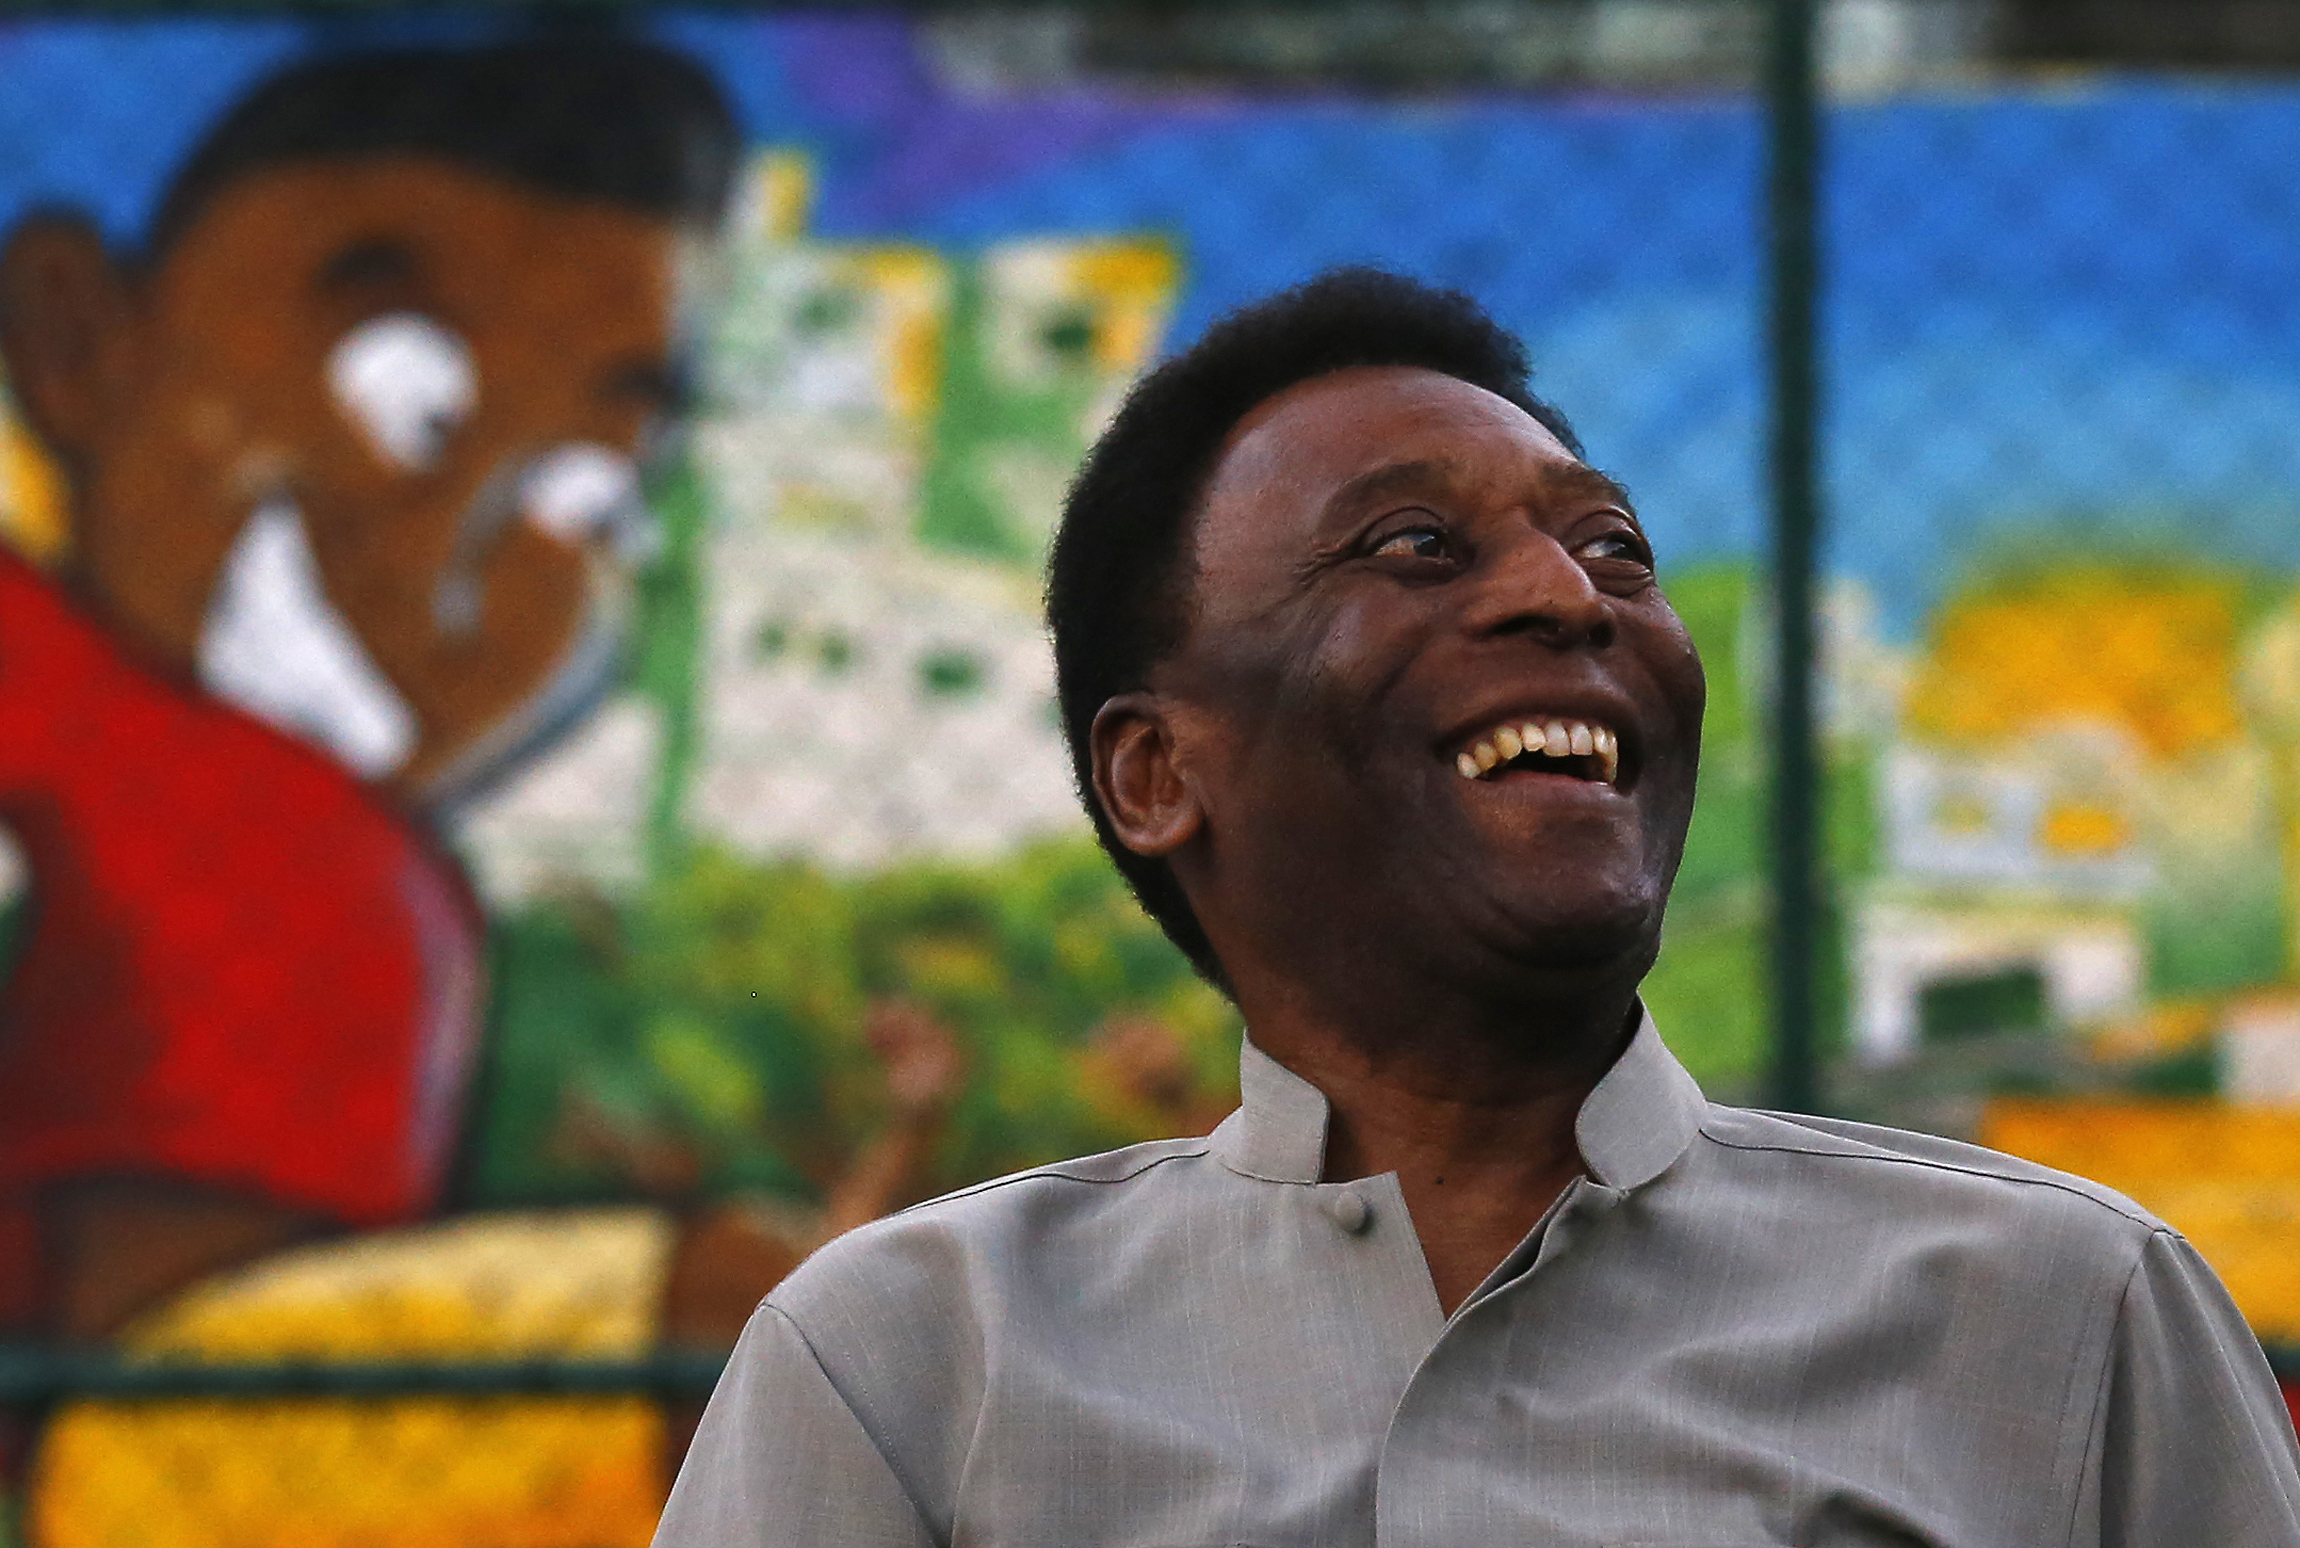 Brazilian soccer legend Pelé laughs during the inauguration of a refurbished soccer field at the Mineira slum in Rio de Janeiro on Sept. 10, 2014